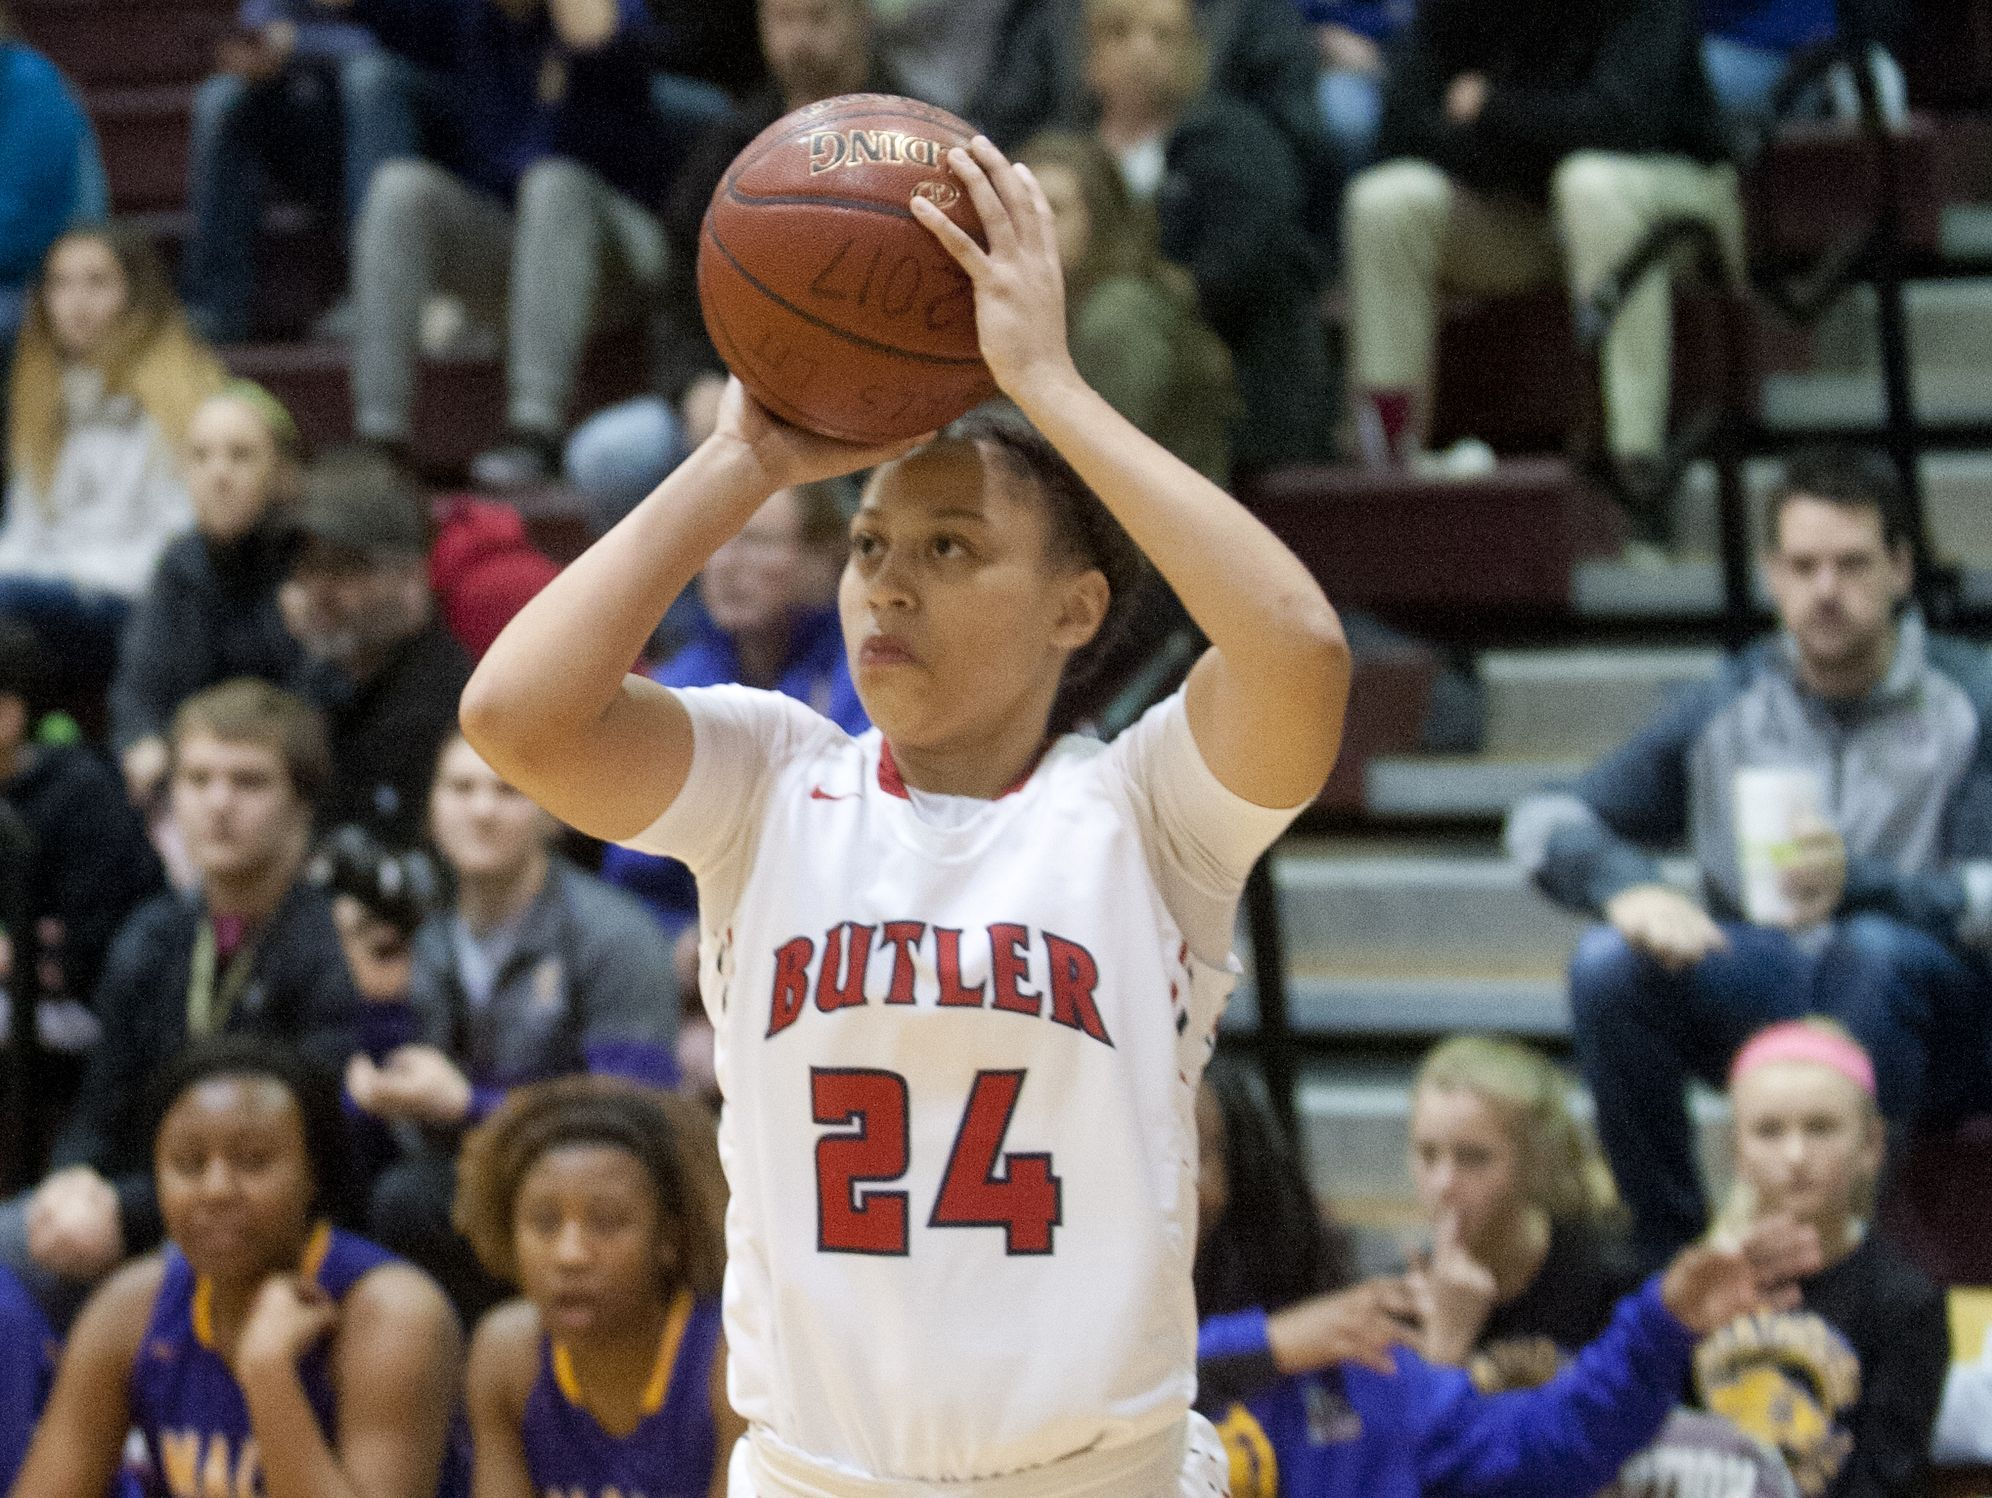 Butler guard Teri Goodlett puts up a 3-point shot in the Girls' LIT championship. She had the team's second-hightest score with 21 points. 28 January 2017